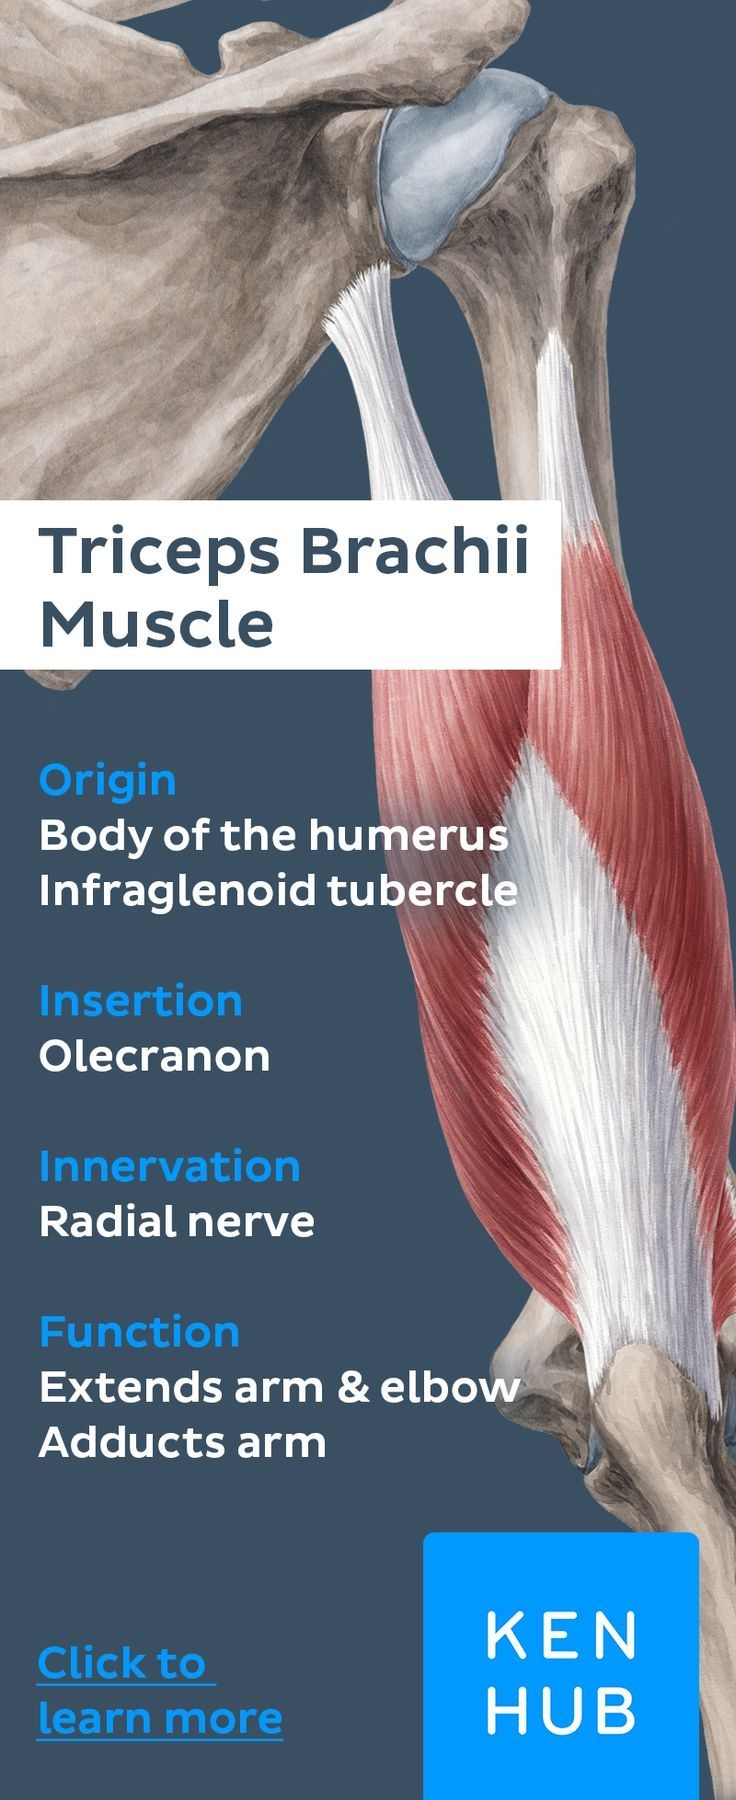 Triceps Brachii Muscle